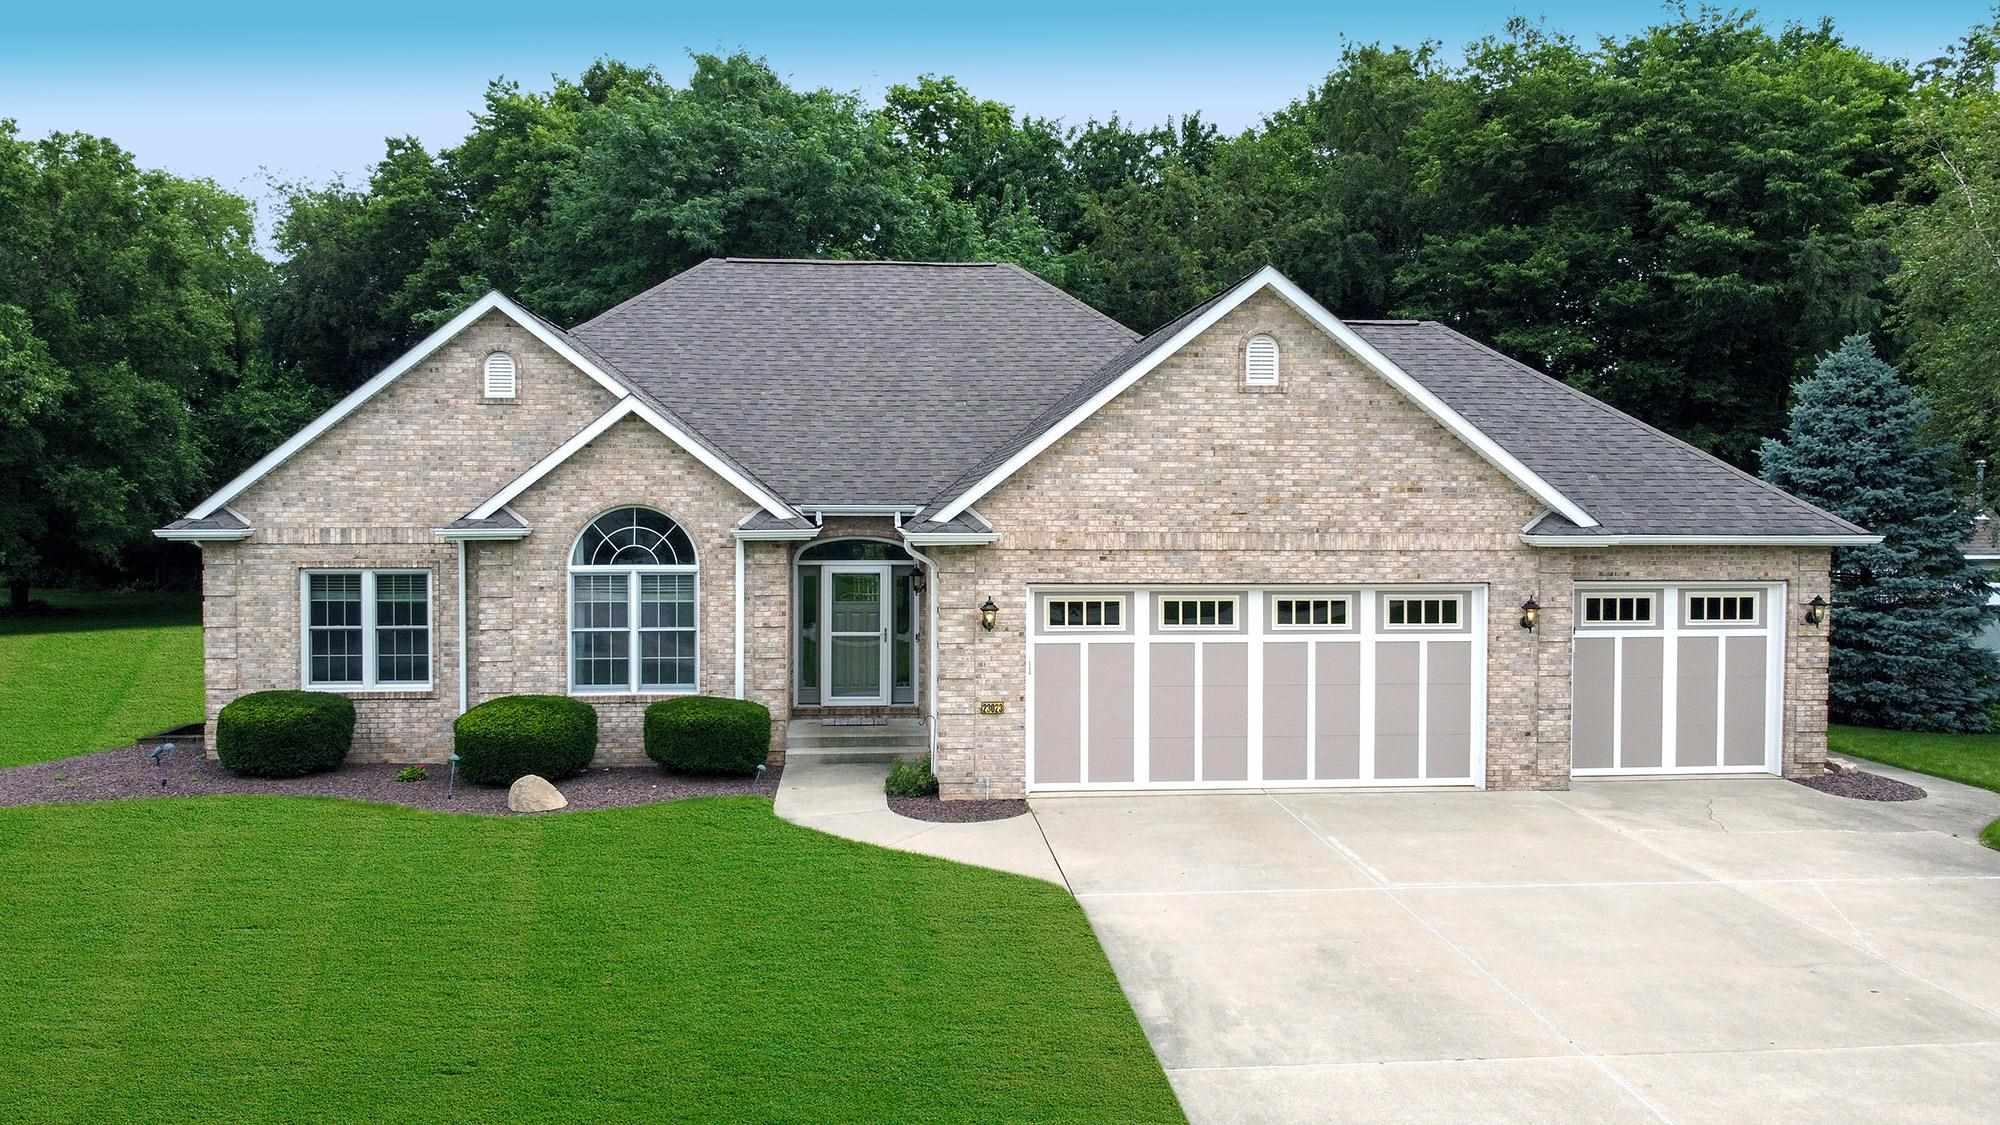 23023 Cottage Grove Elkhart, IN 46516